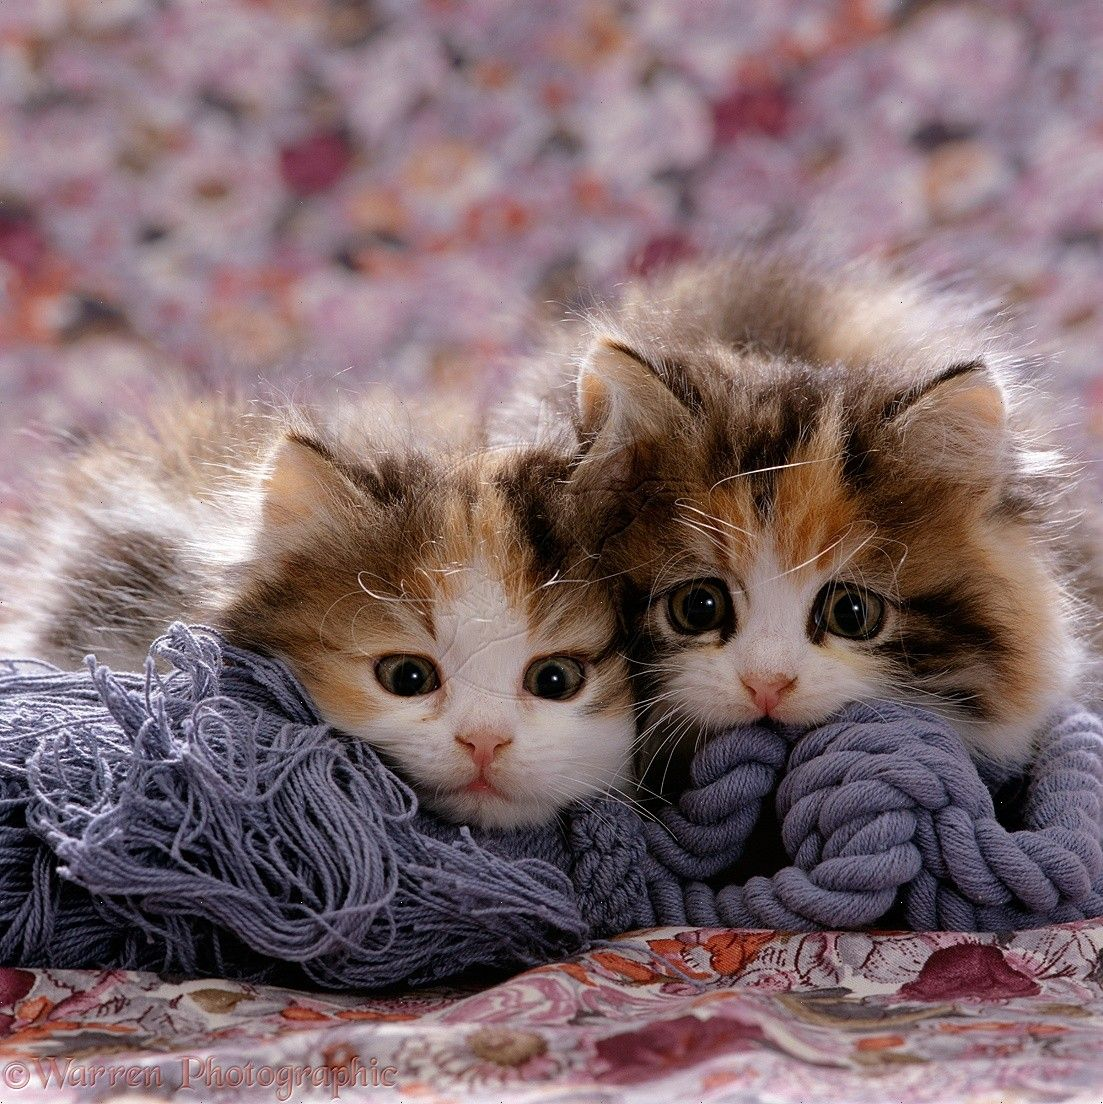 Calico Cats Persian Cross Calico Kittens Kittens Cutest Cute Cats Cats And Kittens